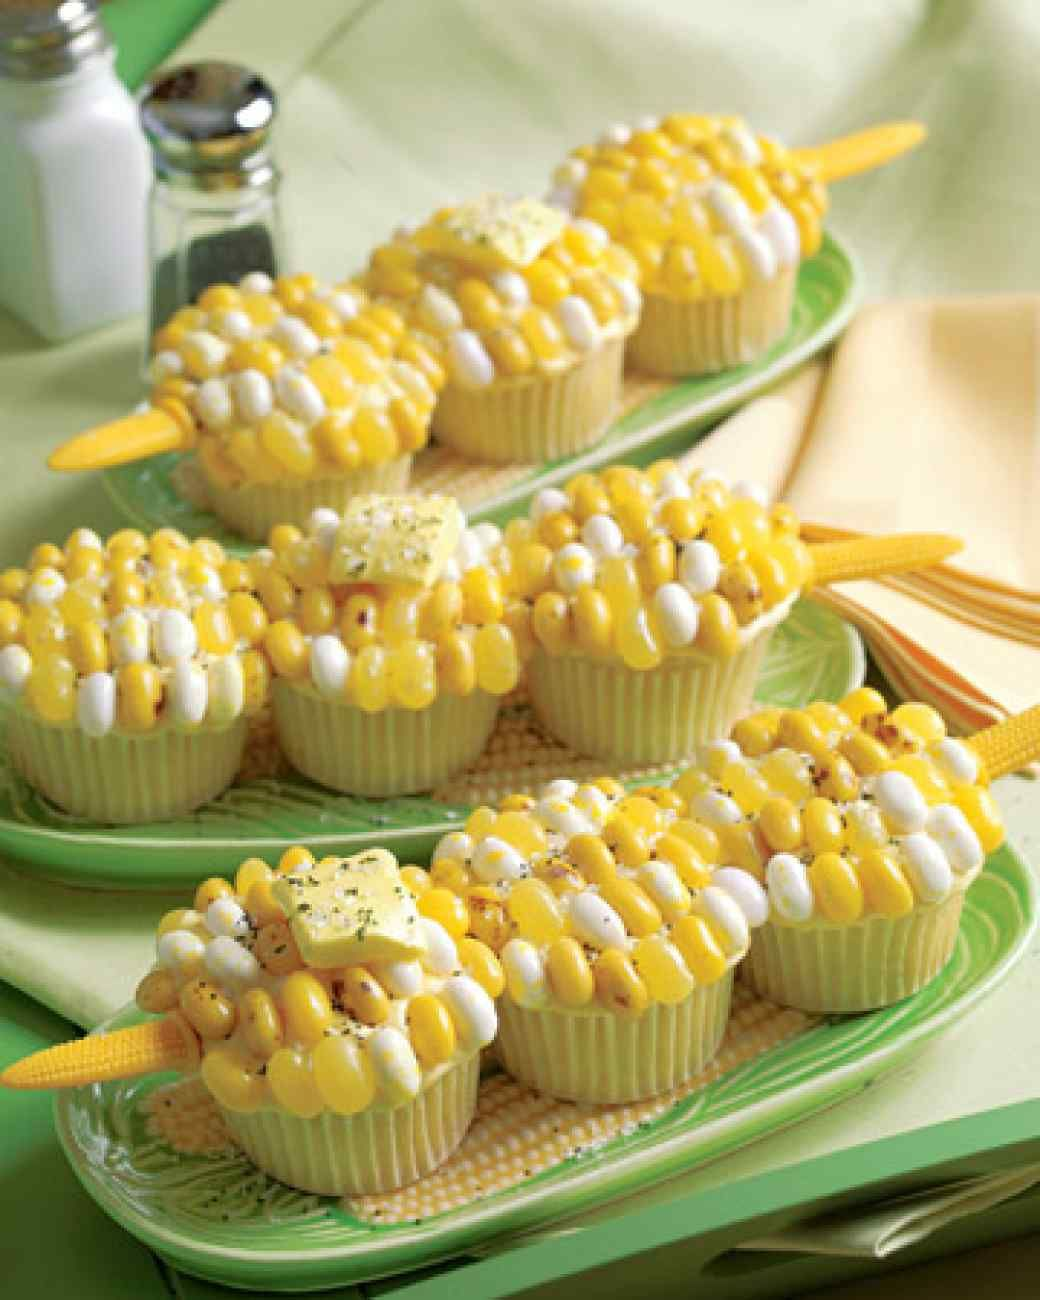 Thanksgiving cupcake decorations - 12 Cute Thanksgiving Desserts That Guests Will Gobble Up